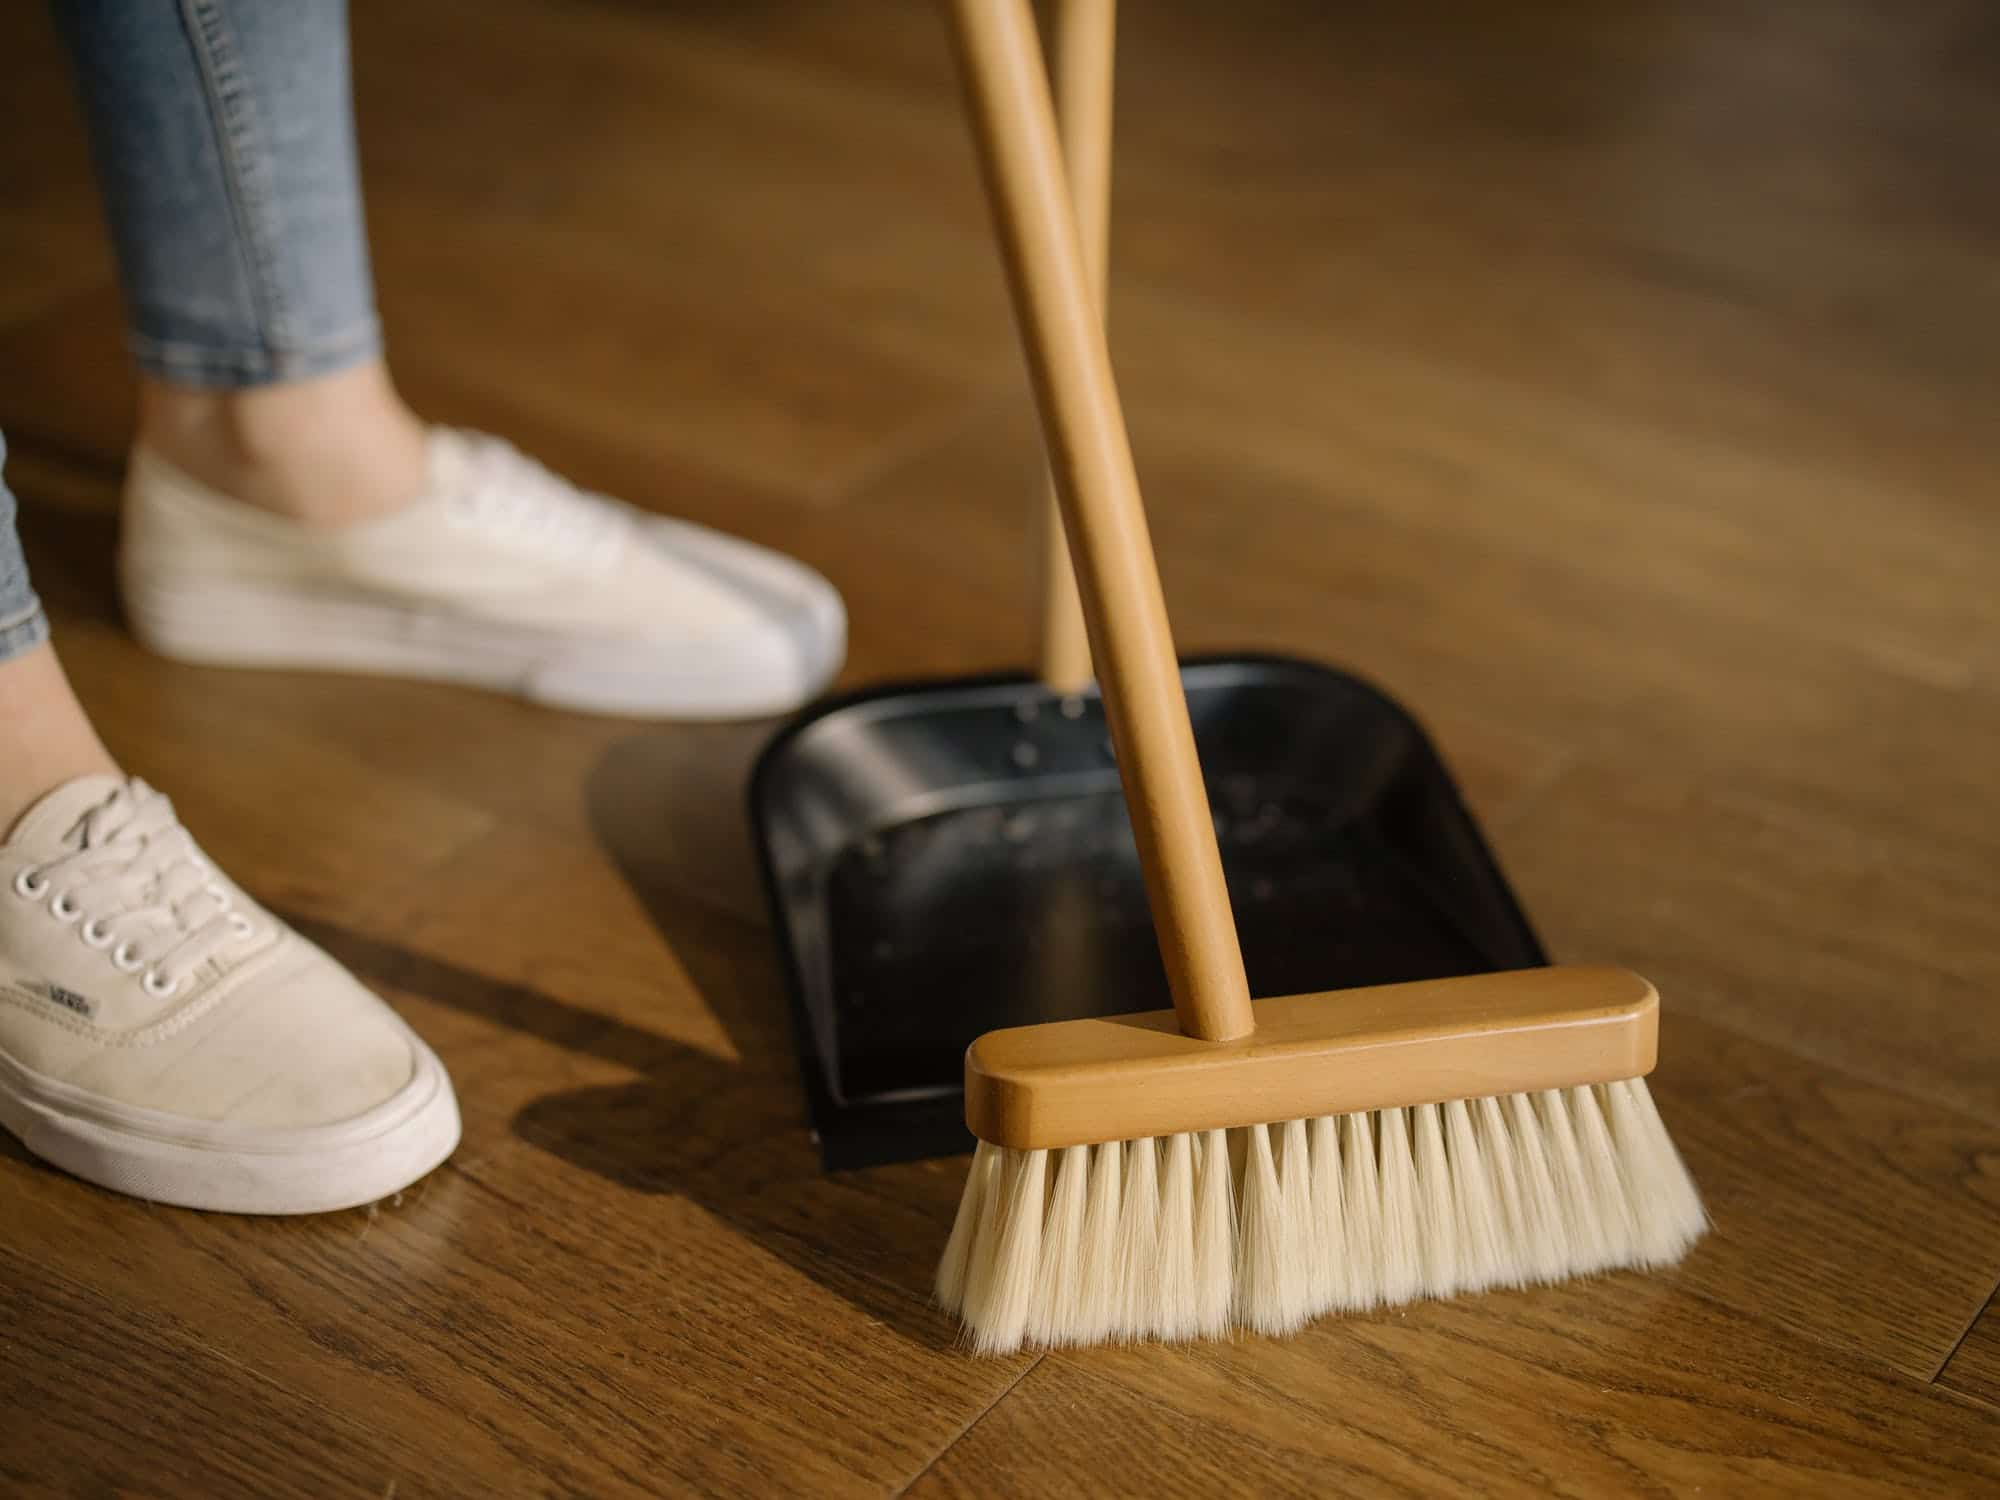 spring cleaning, sweeping the floor